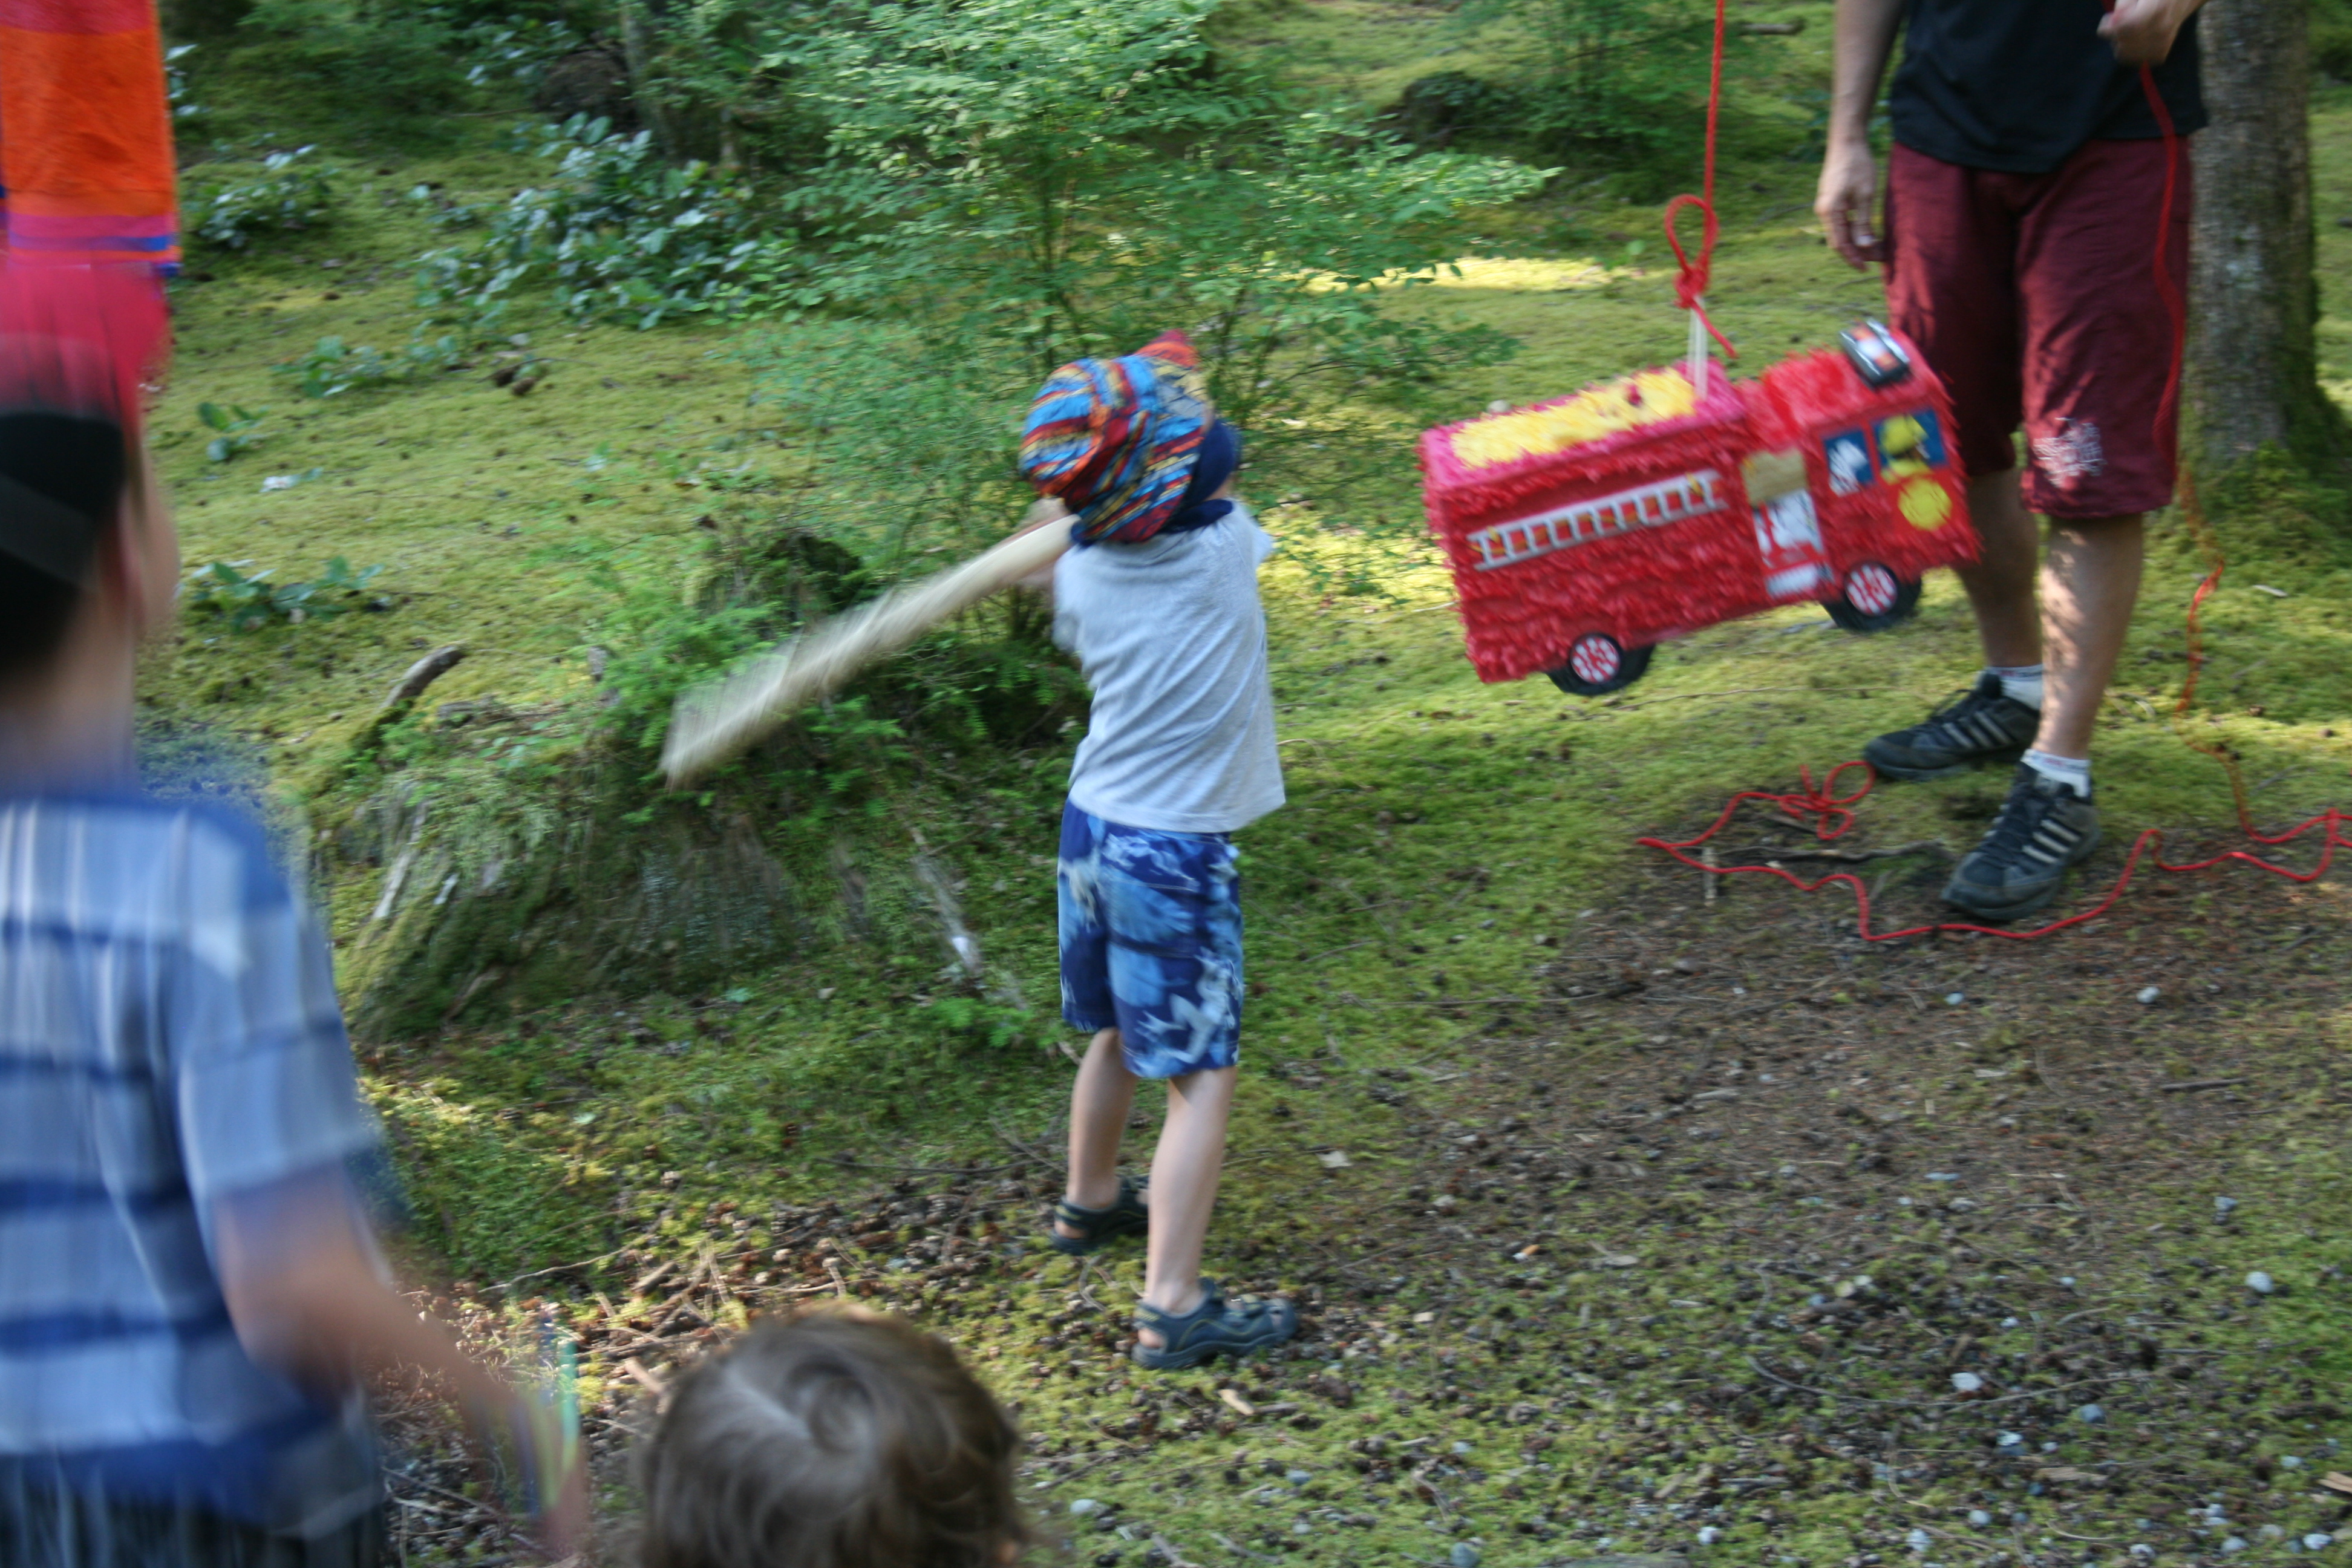 For those times when you can't bring along a giant firetruck piñata, bring along a Camping Toybox!